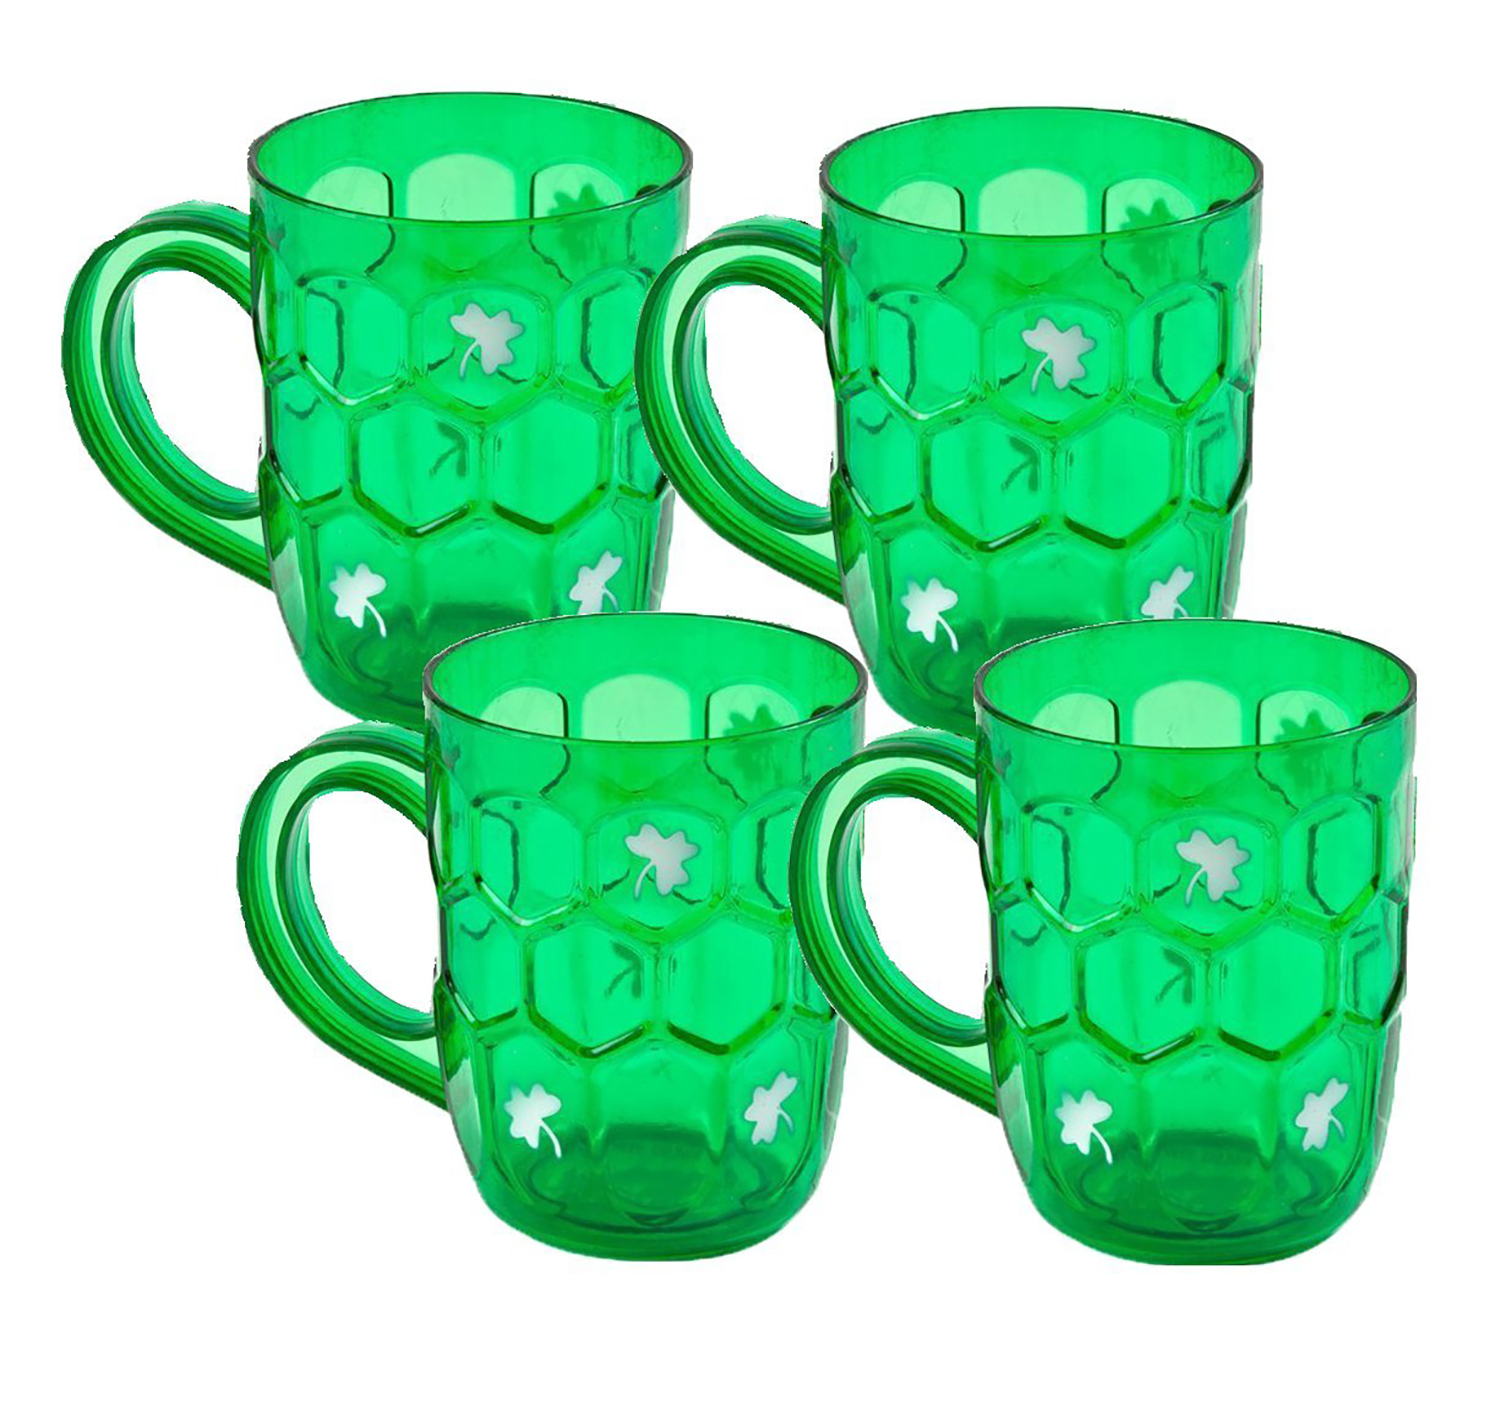 St Patrick's Day Beer Mugs Shamrock 22 oz Plastic Cups, Green, 4 CT